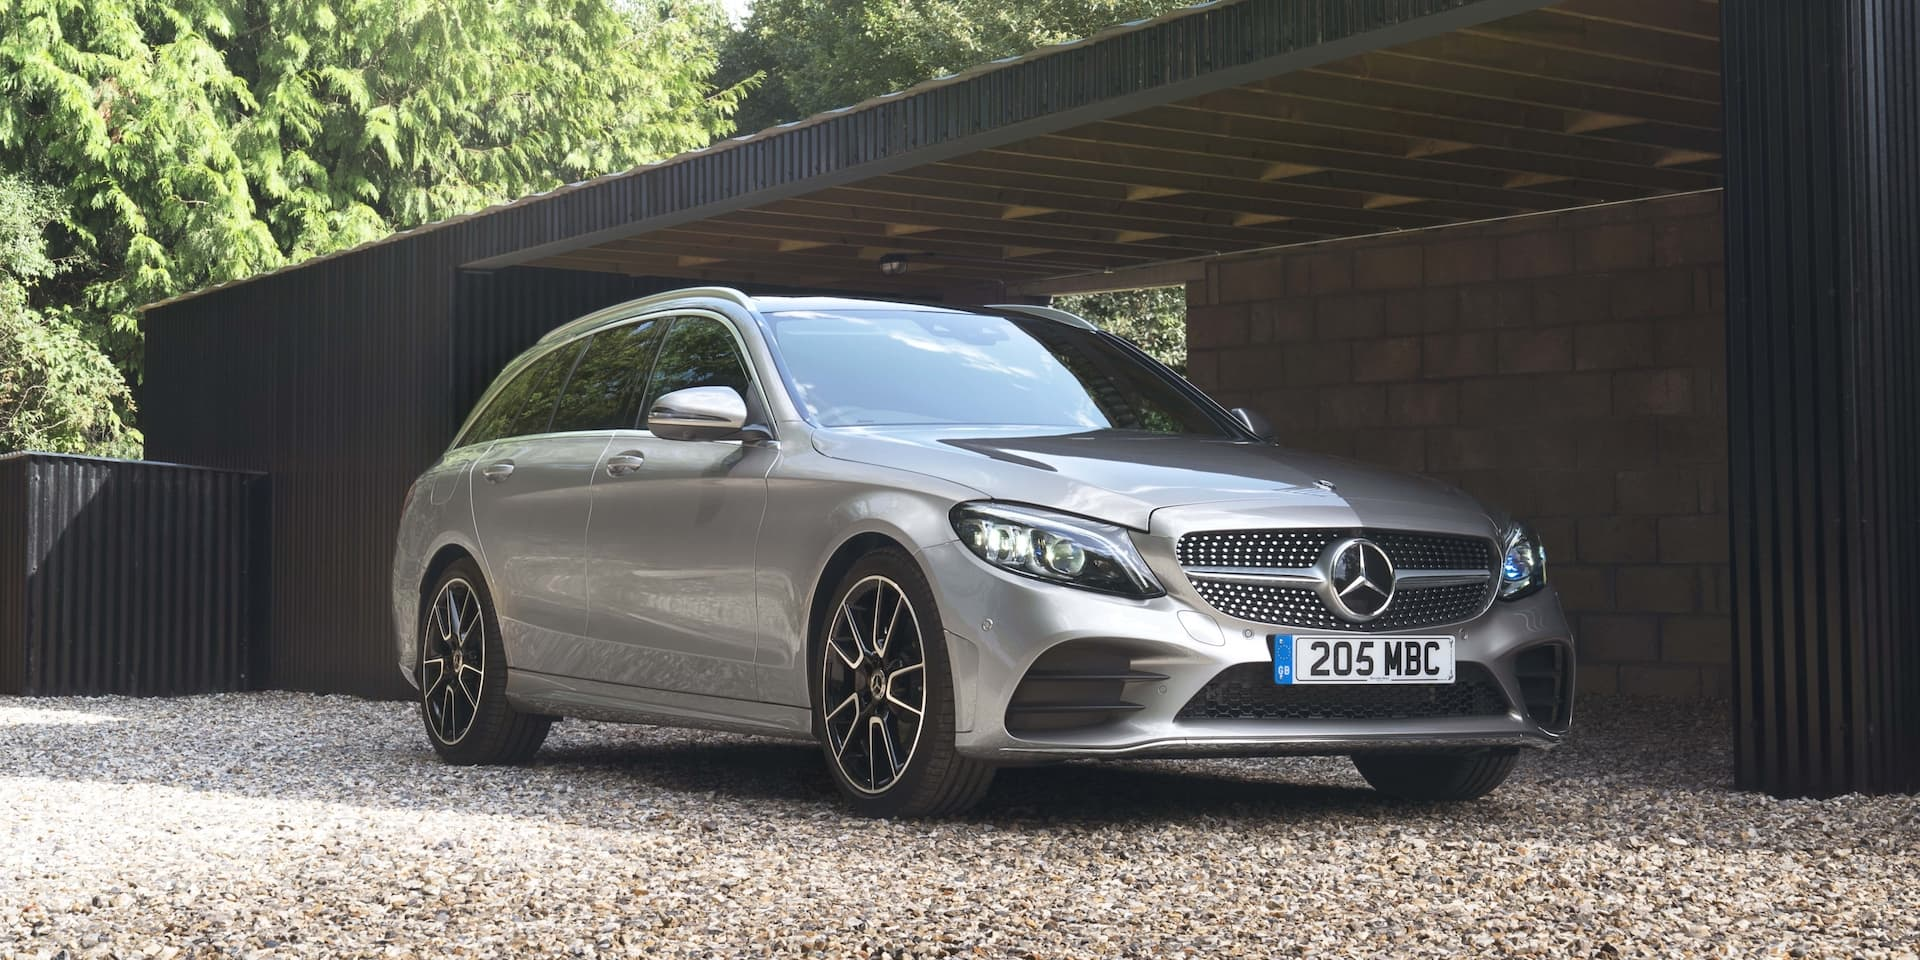 Mercedes-Benz C-Class (2014 onwards) Expert Rating